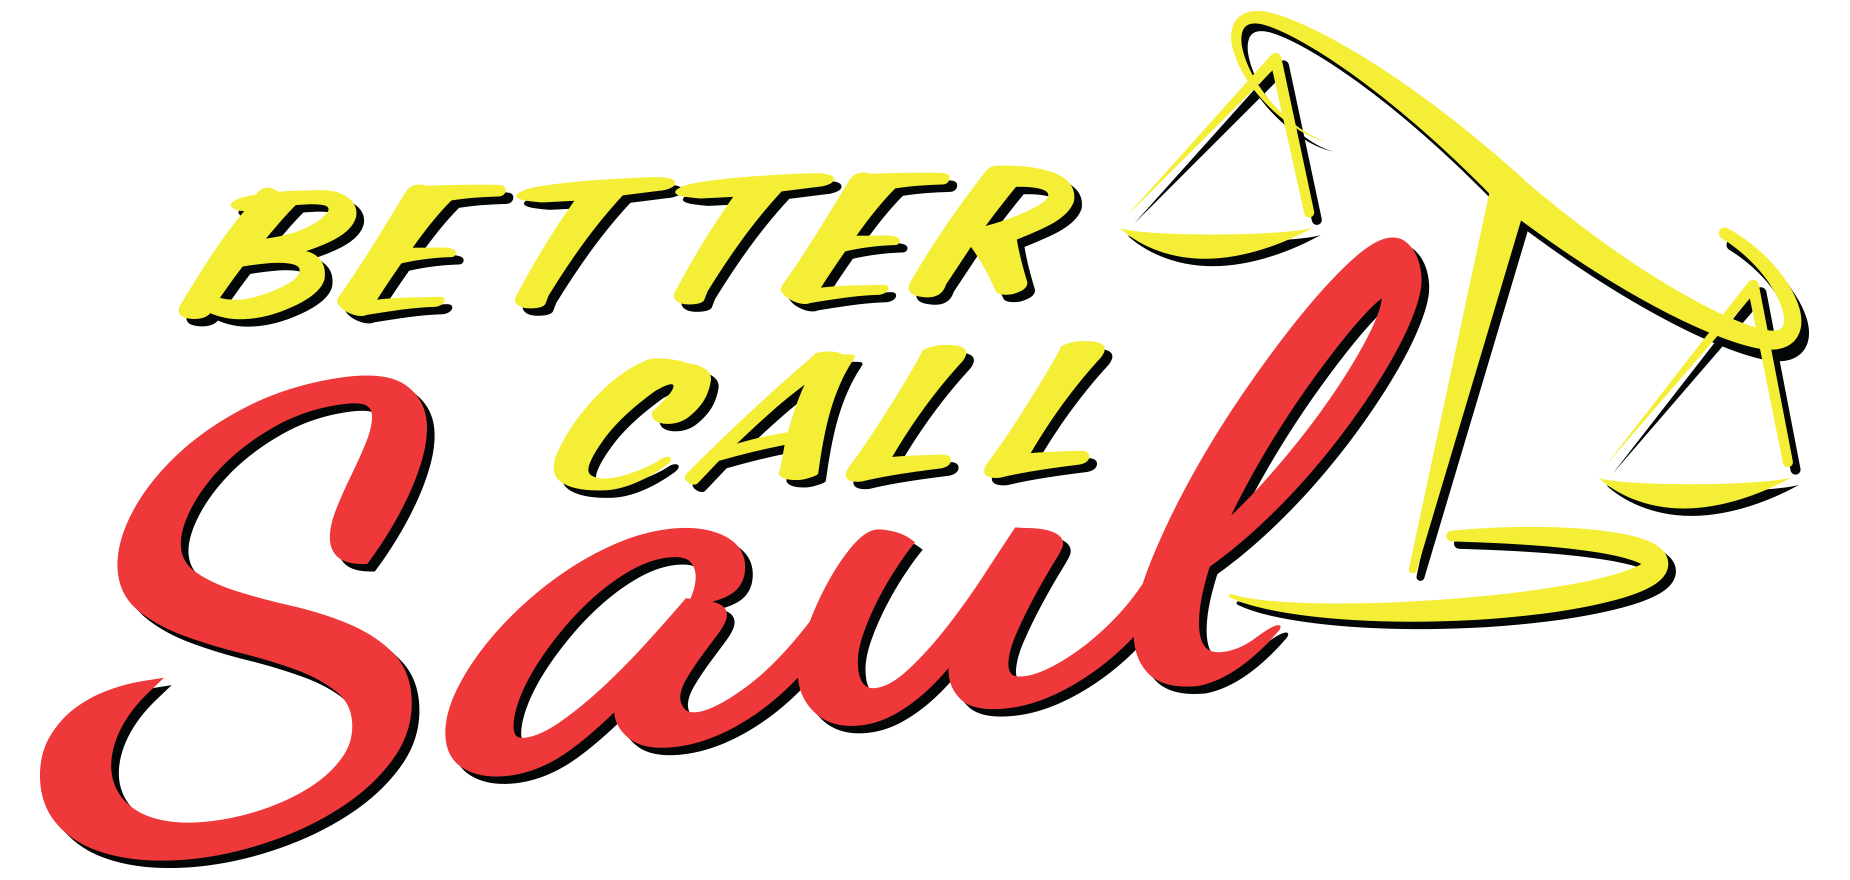 Better Call Saul - Sony Pictures Television, Gran Via Productions